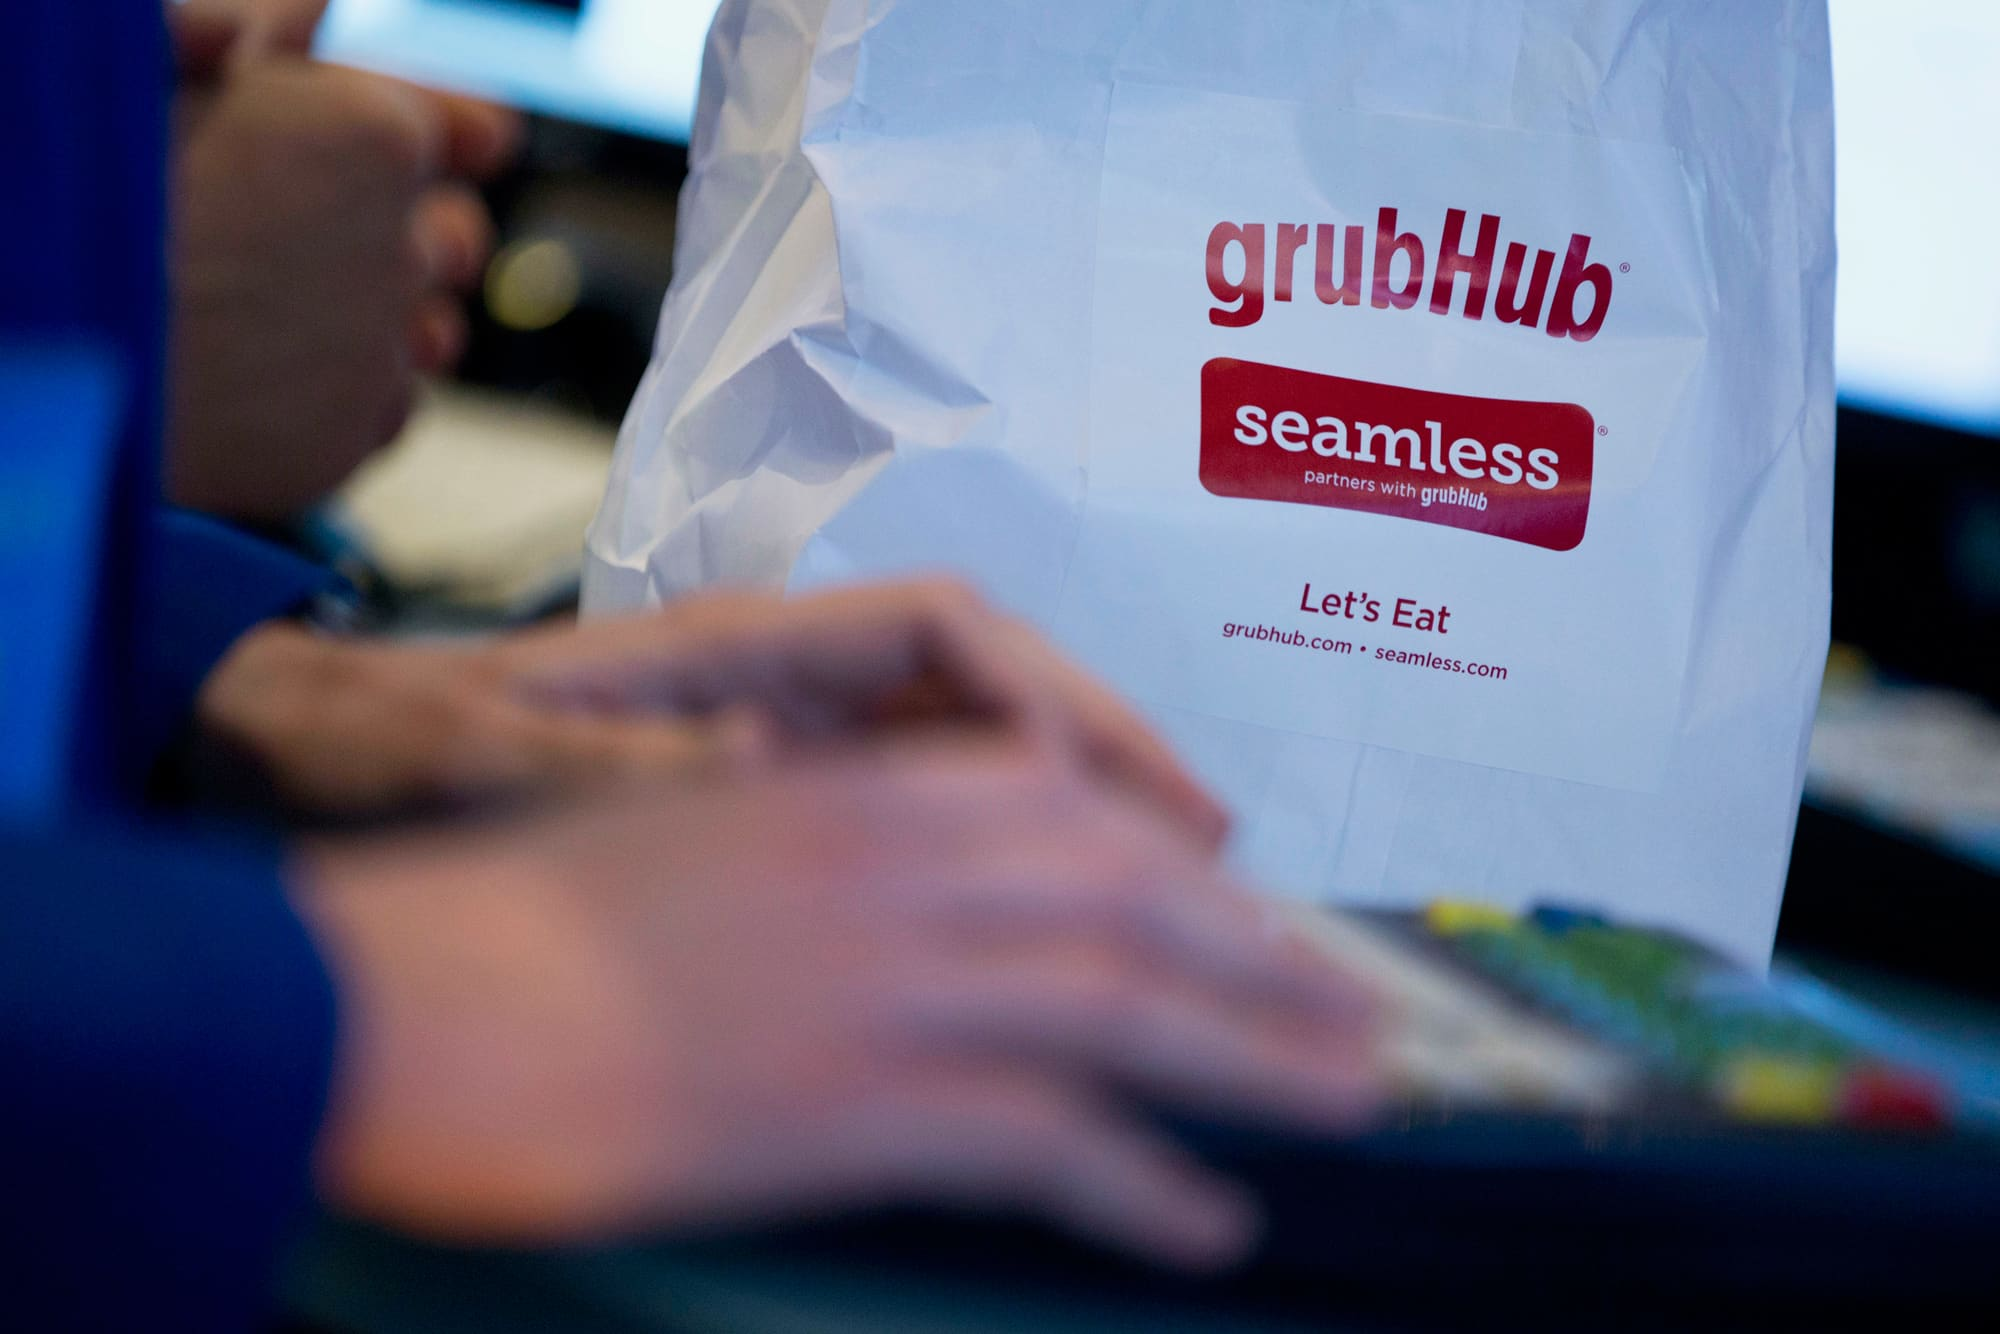 Taco Bell owner sues Grubhub, claiming it violated distribution agreement